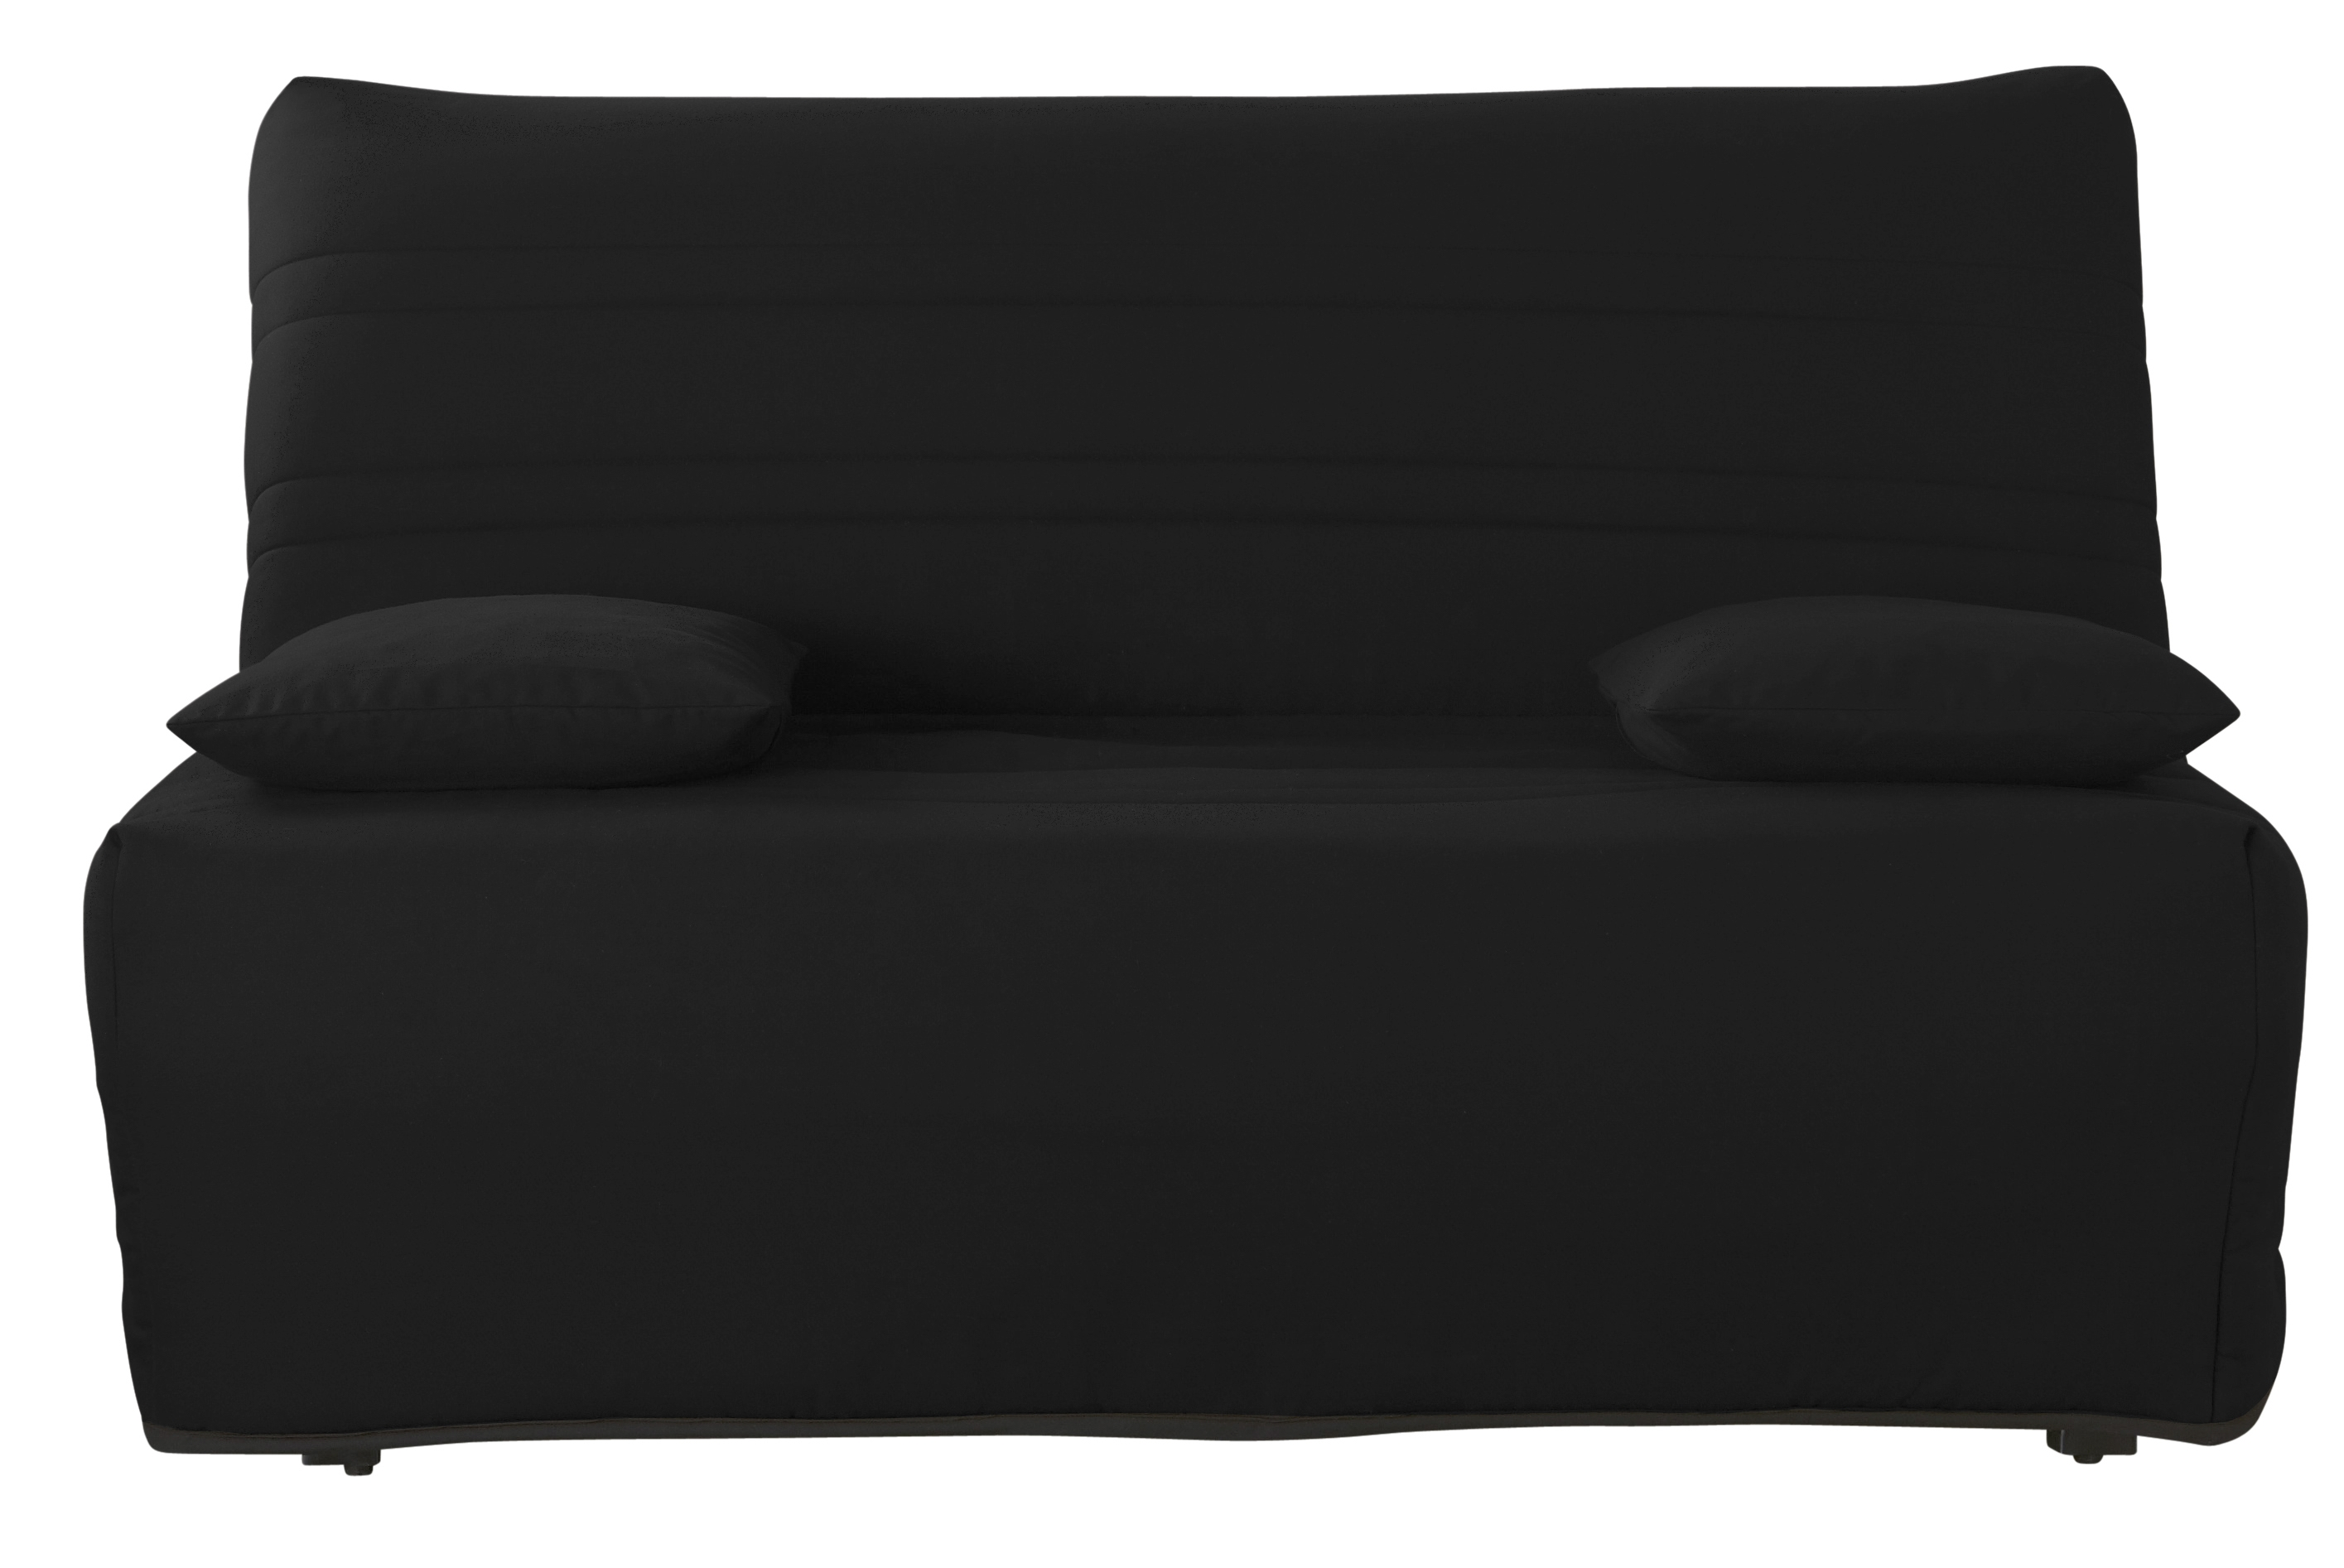 banquette bz noir 140 dunlopillo malor. Black Bedroom Furniture Sets. Home Design Ideas